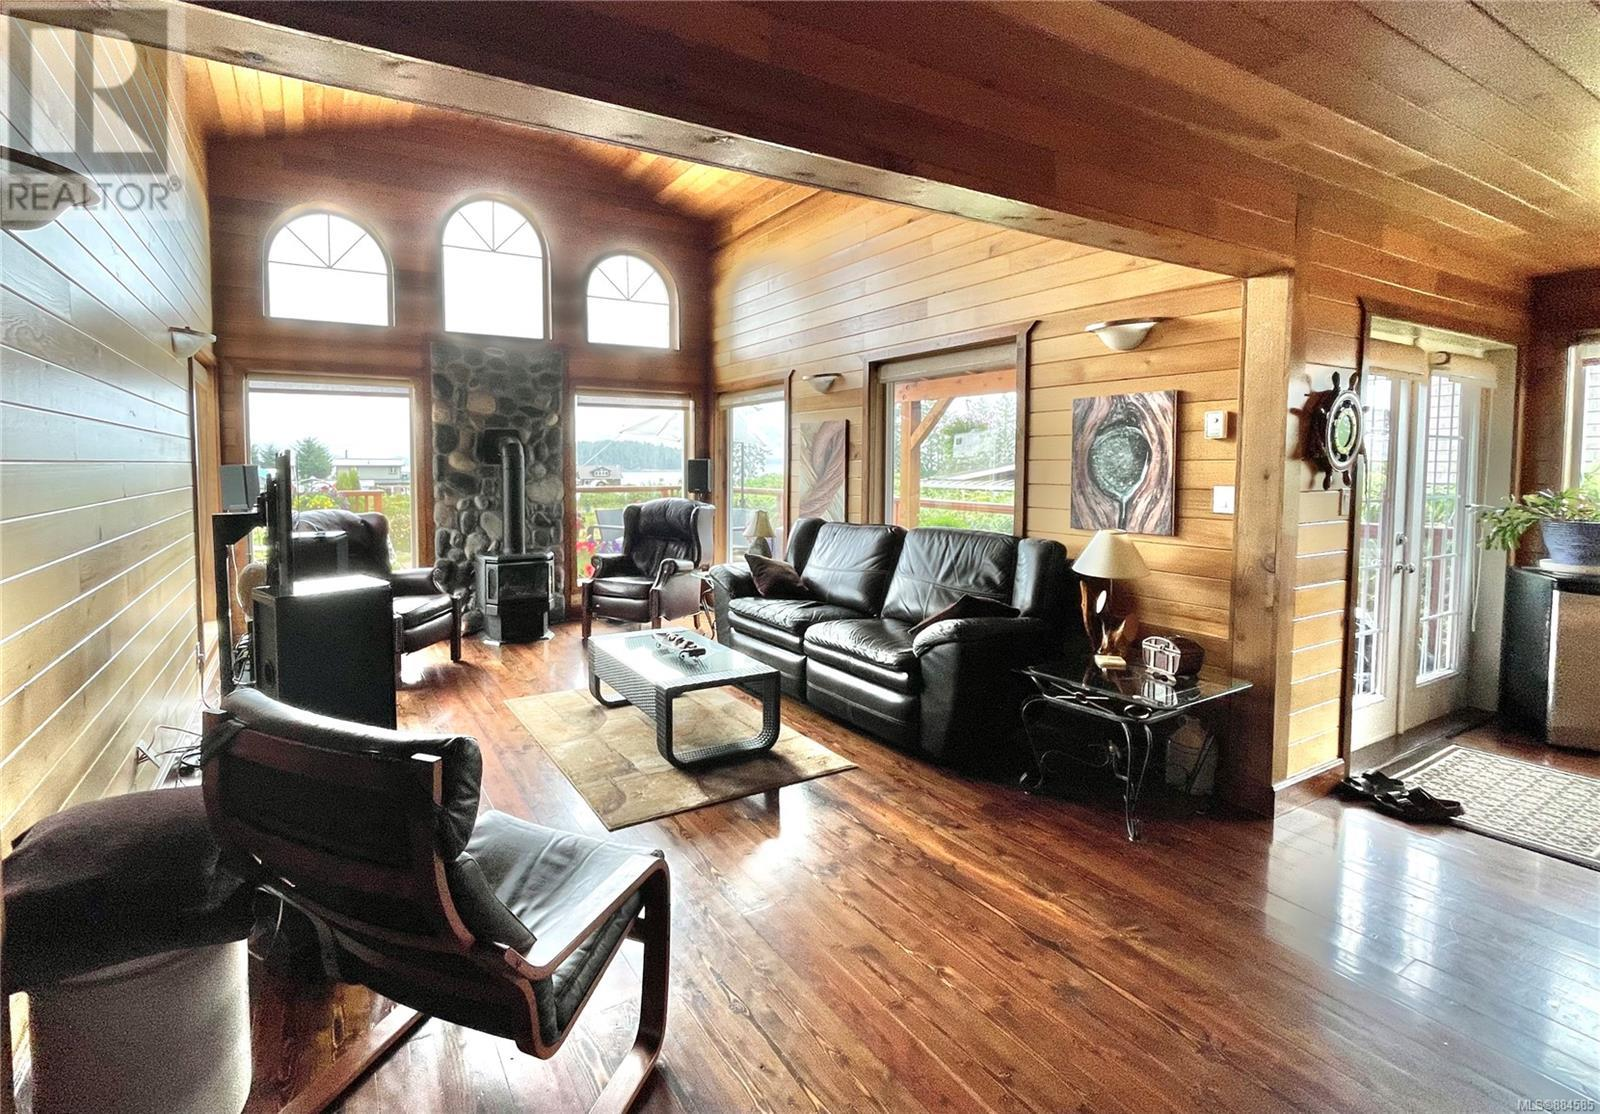 MLS® #884585 - Ucluelet House For sale Image #6